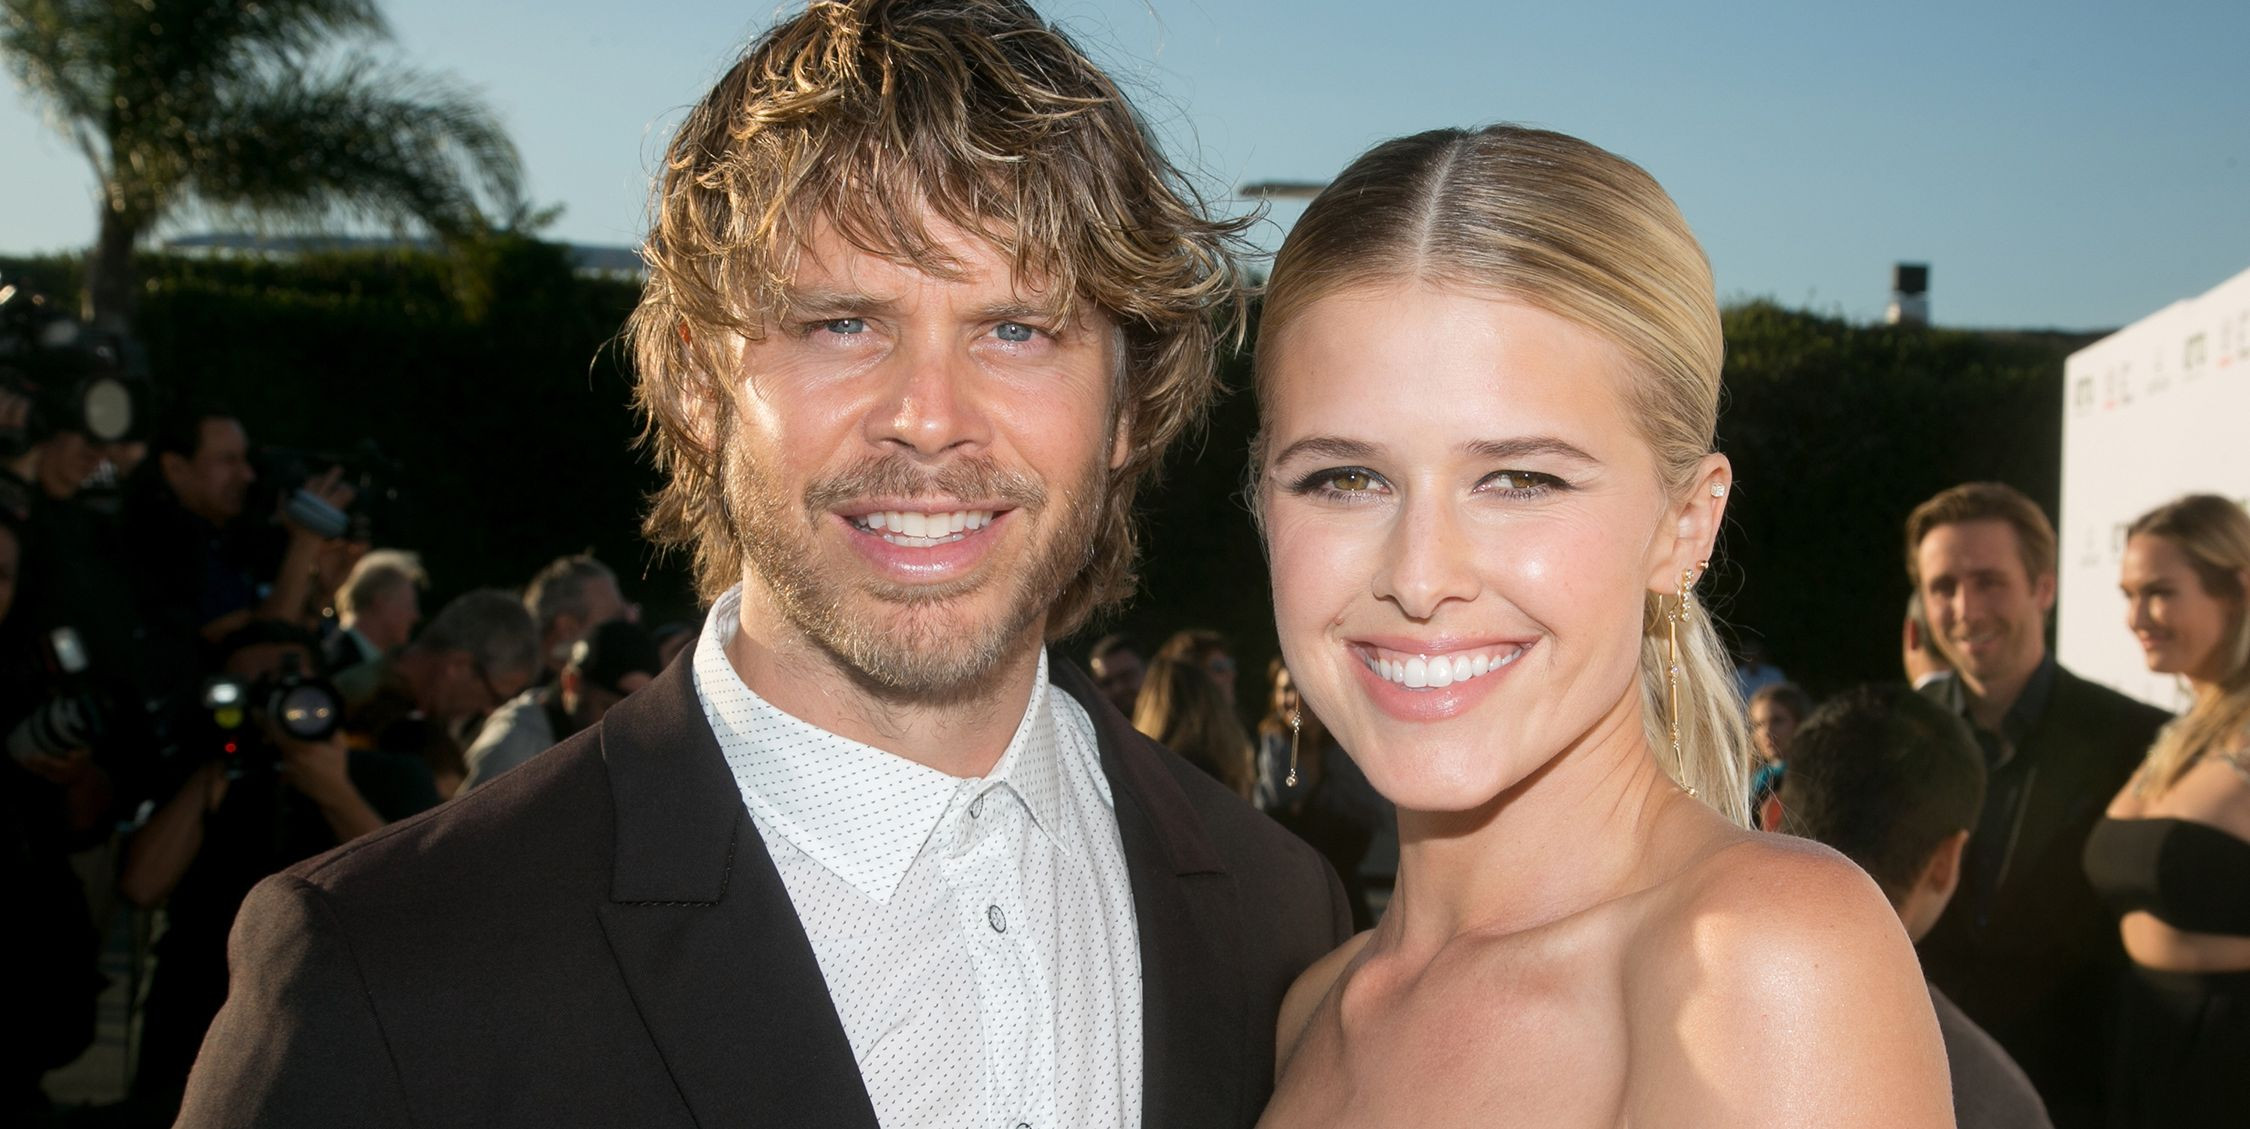 'NCIS: LA' Star Eric Christian Olsen Said the Sweetest Thing to His Wife After She Gave Birth